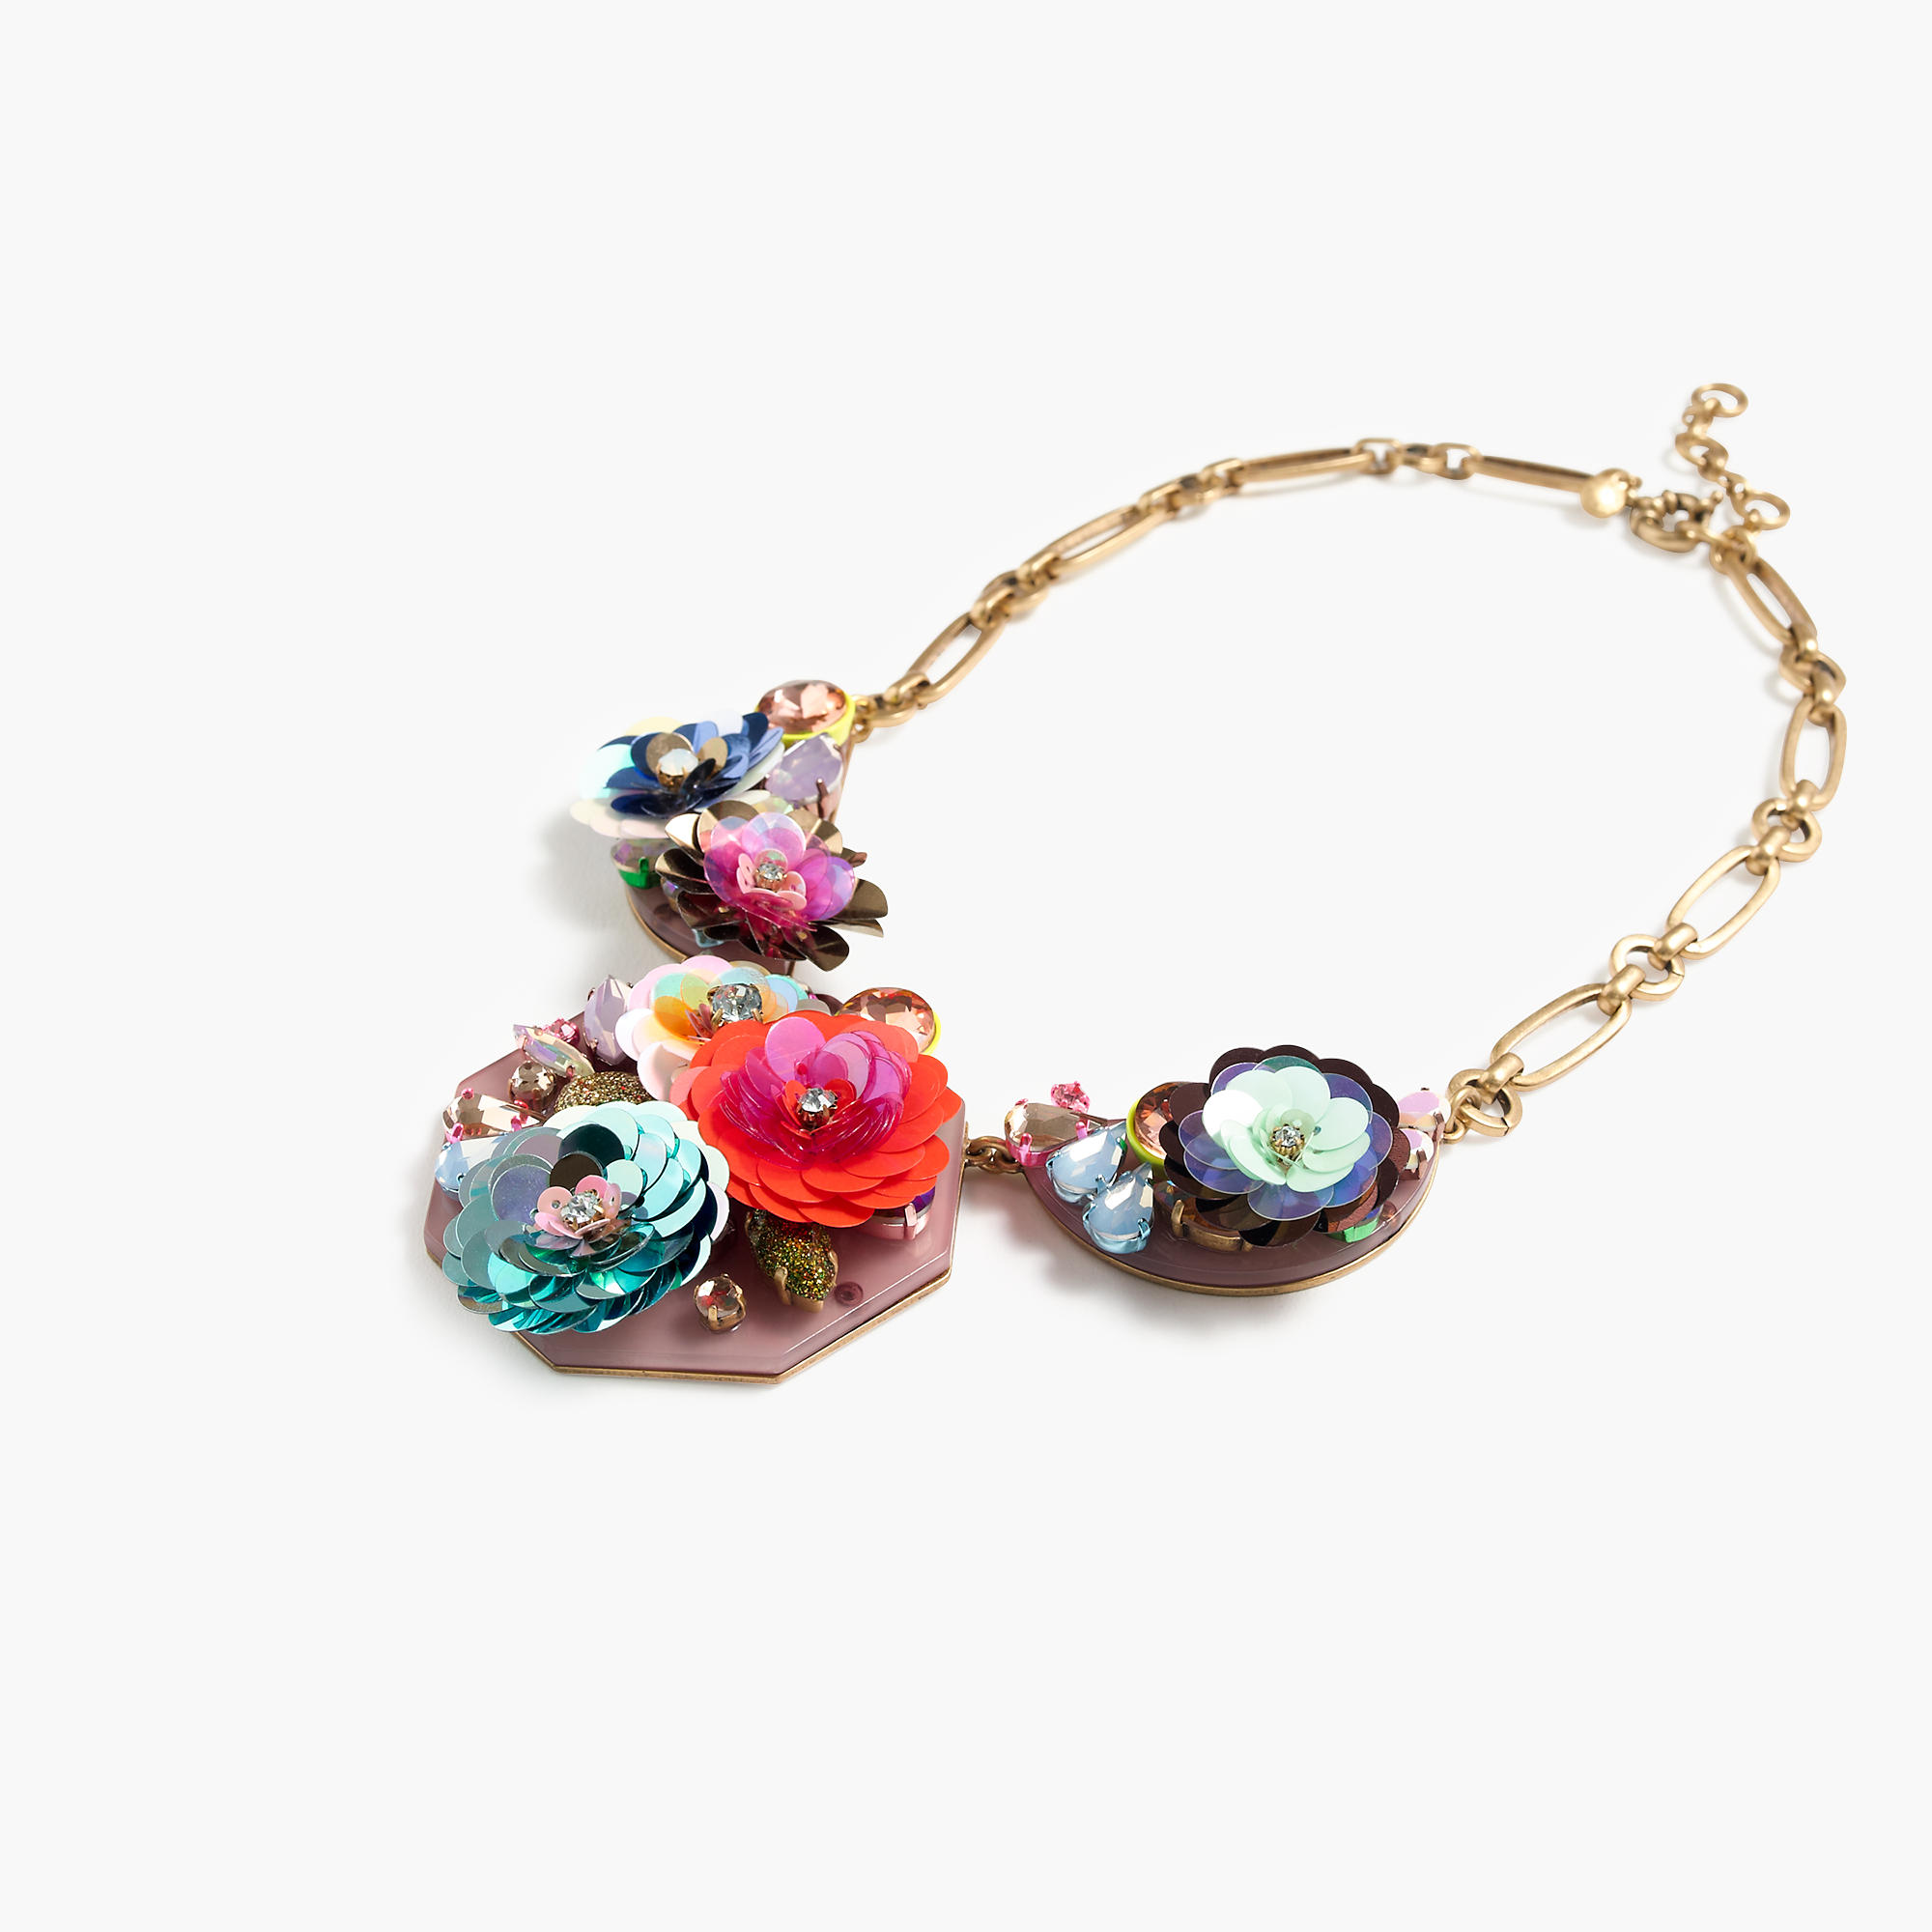 Blooming sequin paillette bib necklace j crew for J crew jewelry 2015